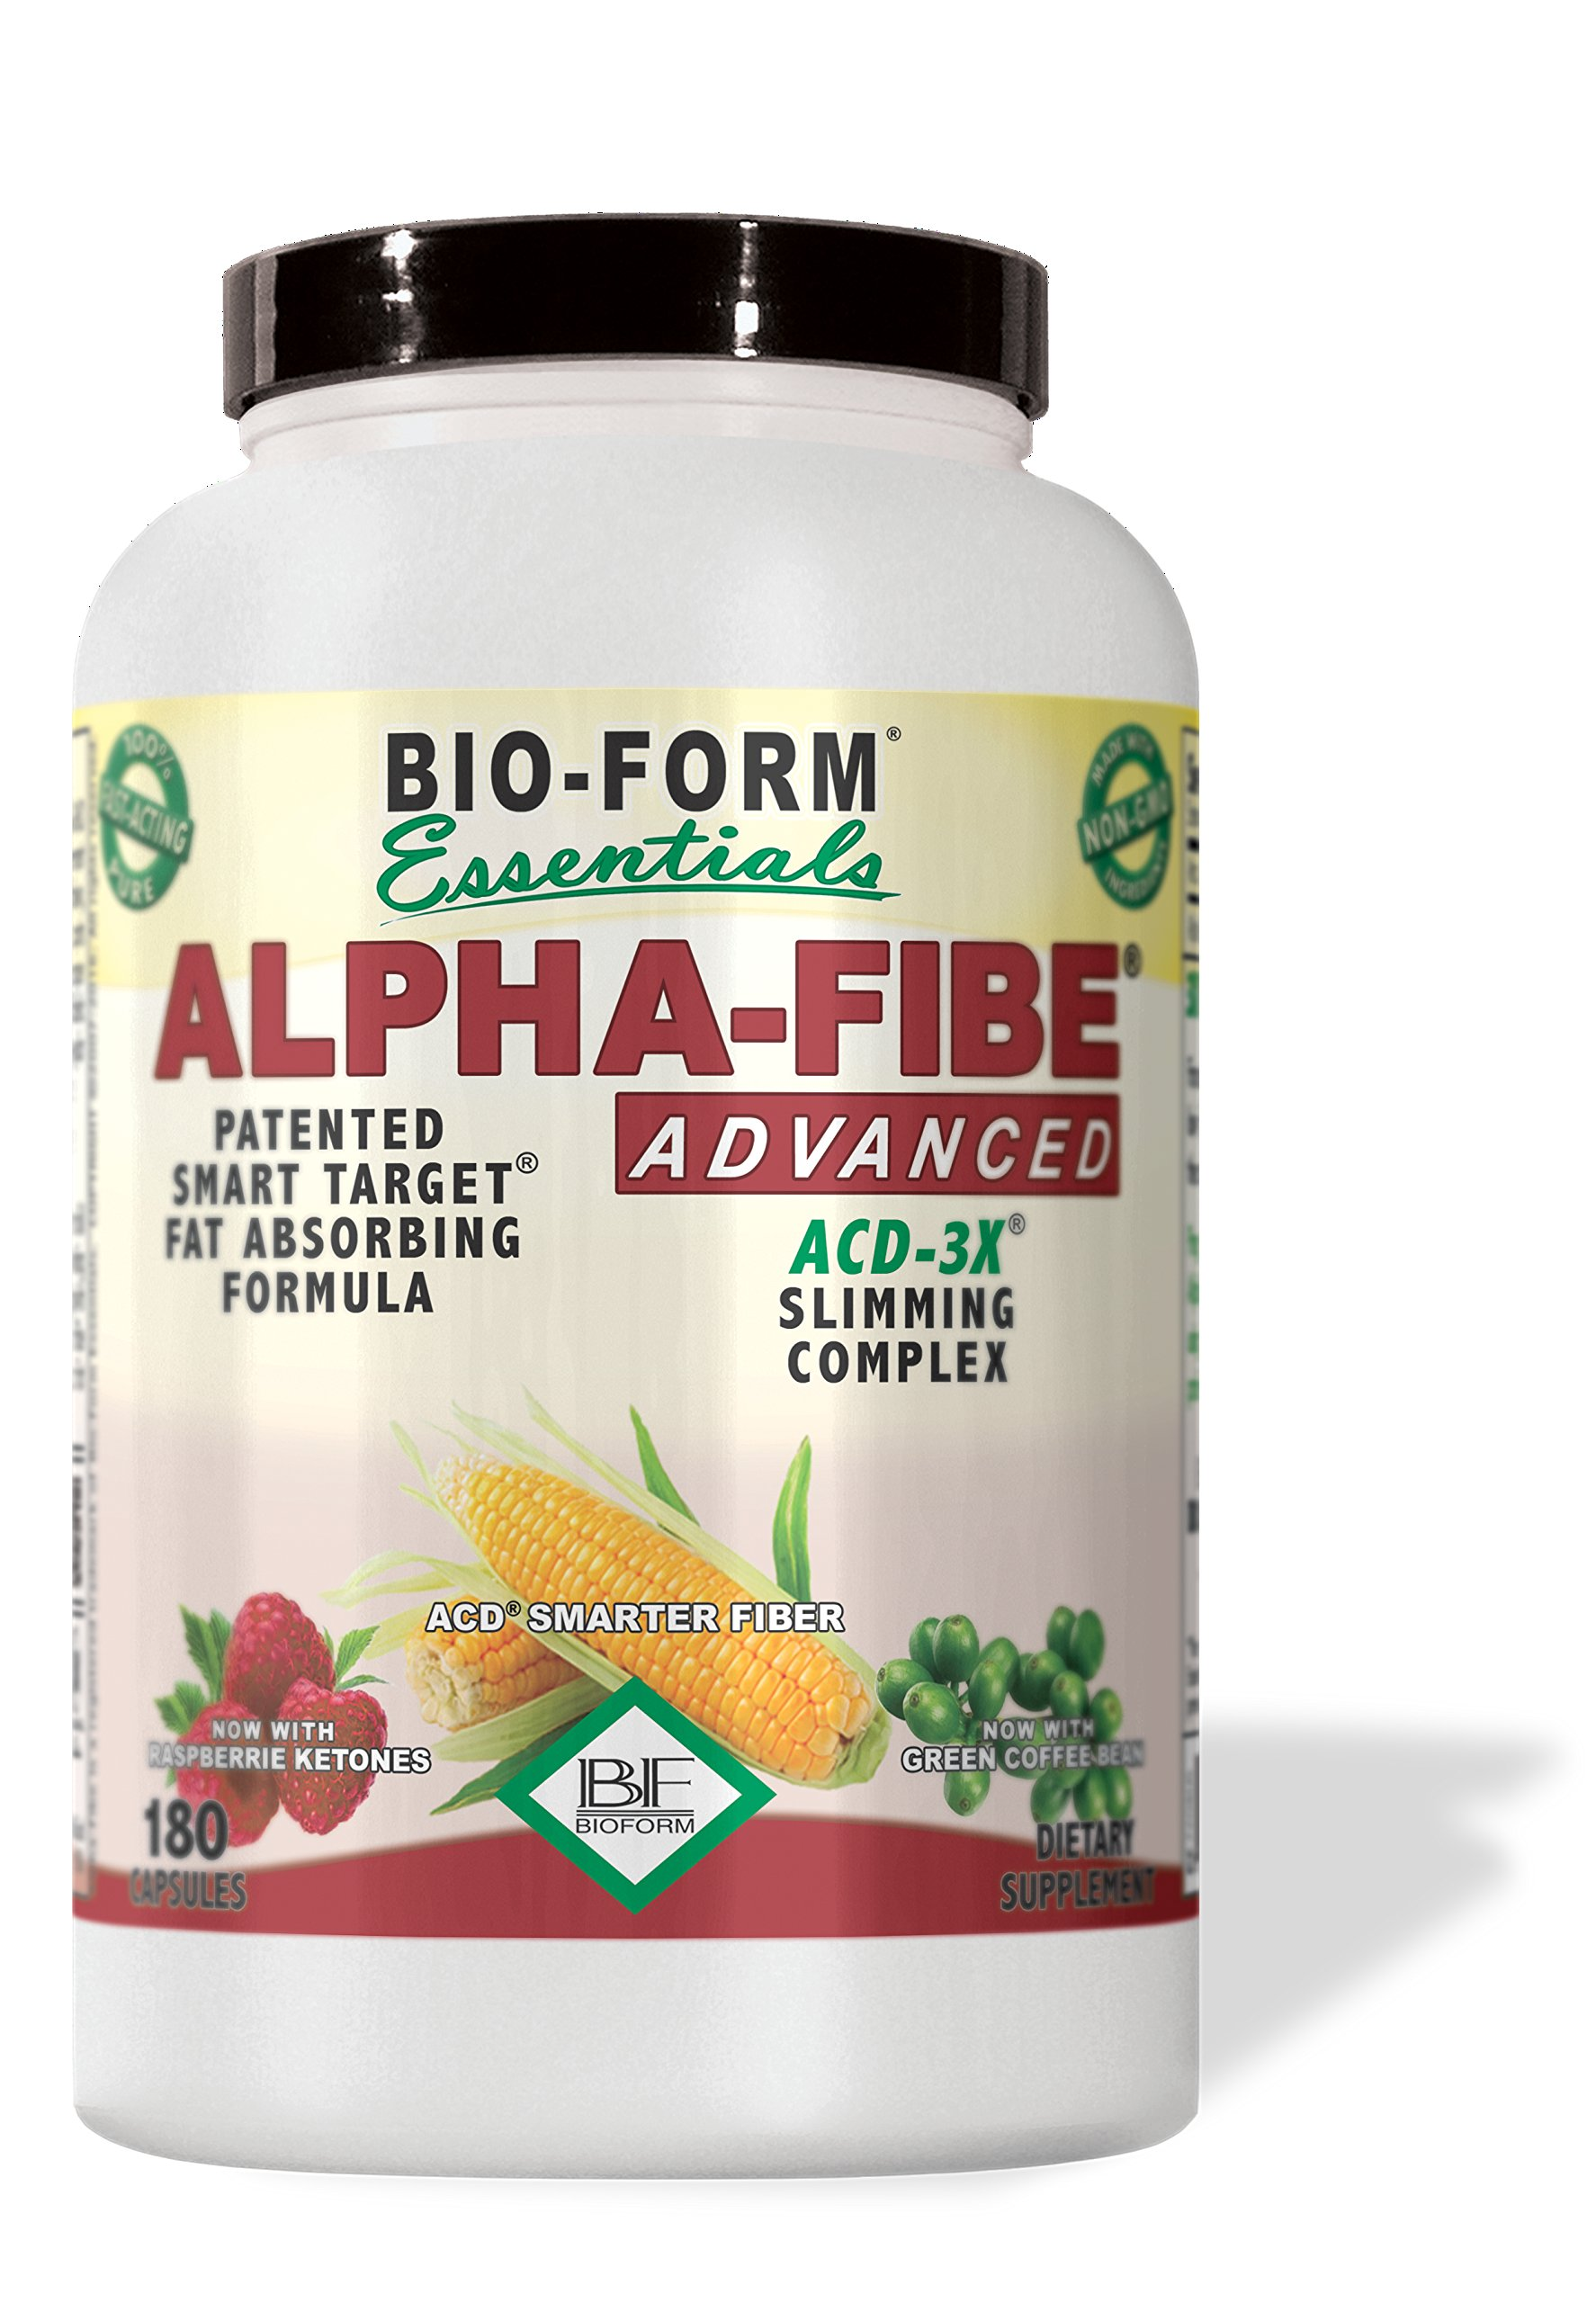 Alpha-Fibe Advanced ACD-3X Smart Weight Loss Slimming Complex for Men & Women (180 Fast-Acting Capsules) by Bio-Form Essentials by Alpha-Fibe (Image #2)